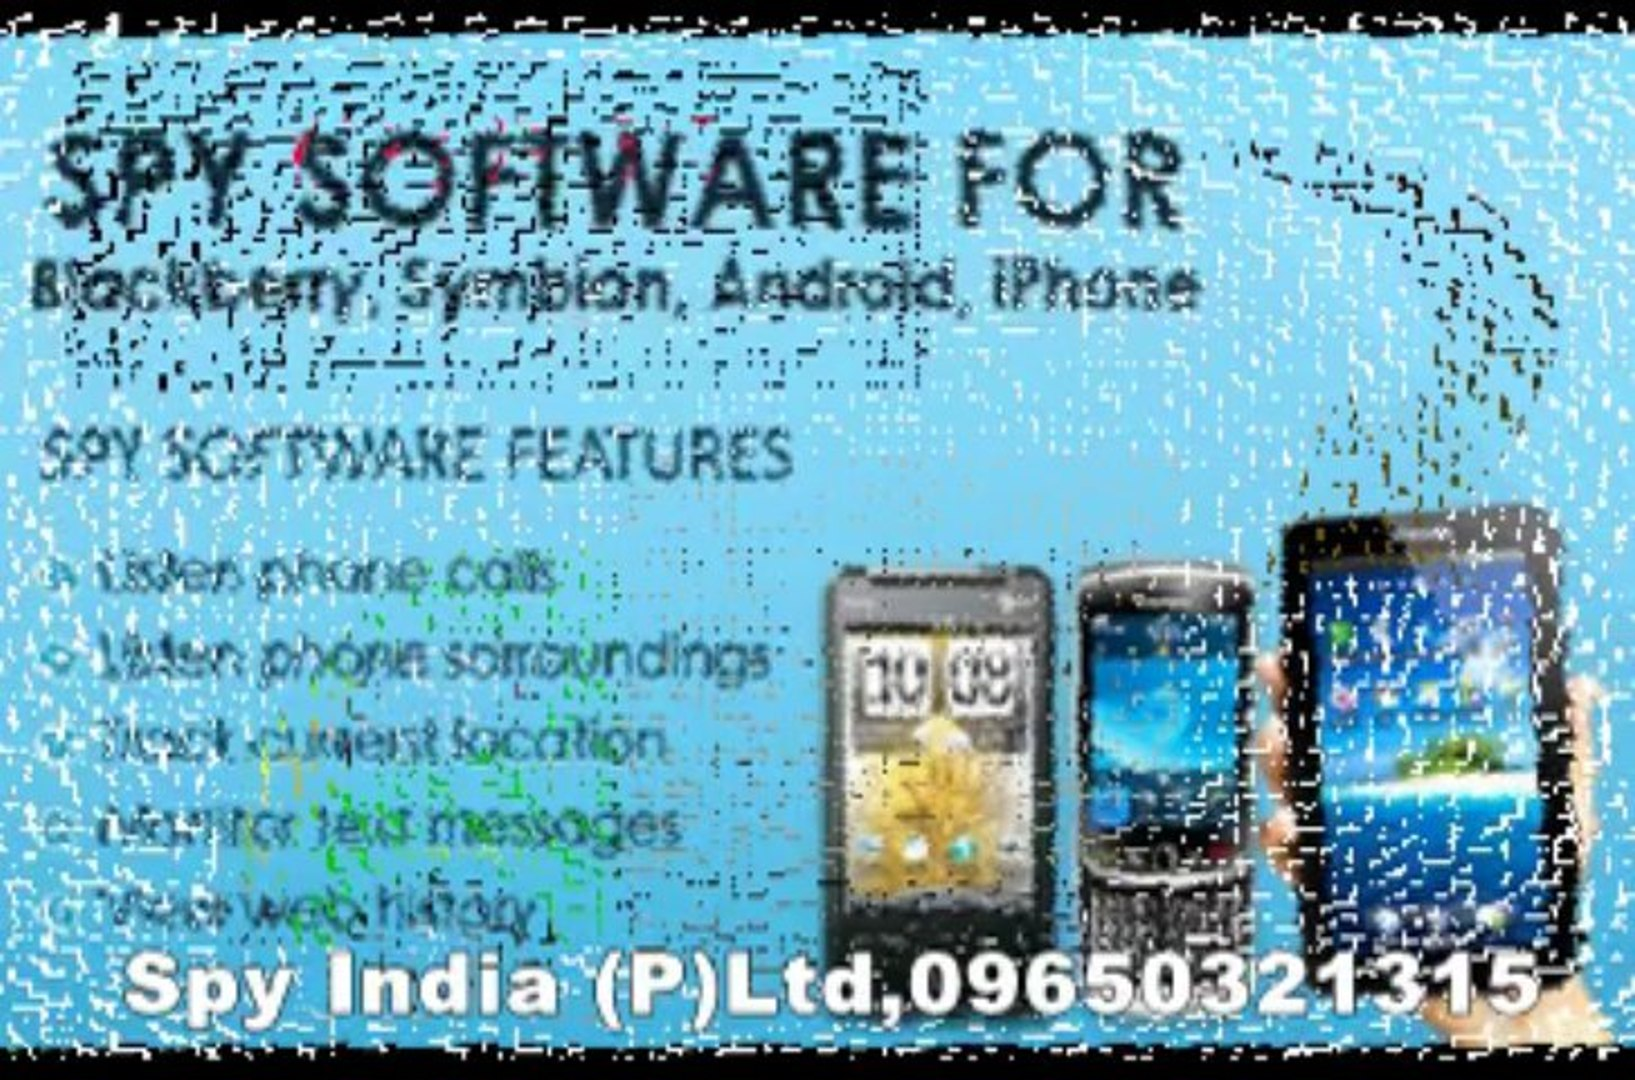 MOBILE PHONE SPY SOFTWARE IN DELHI,09650321315,MOBILE PHONE SPY SOFTWARE DELHI,www.spydelhi.org